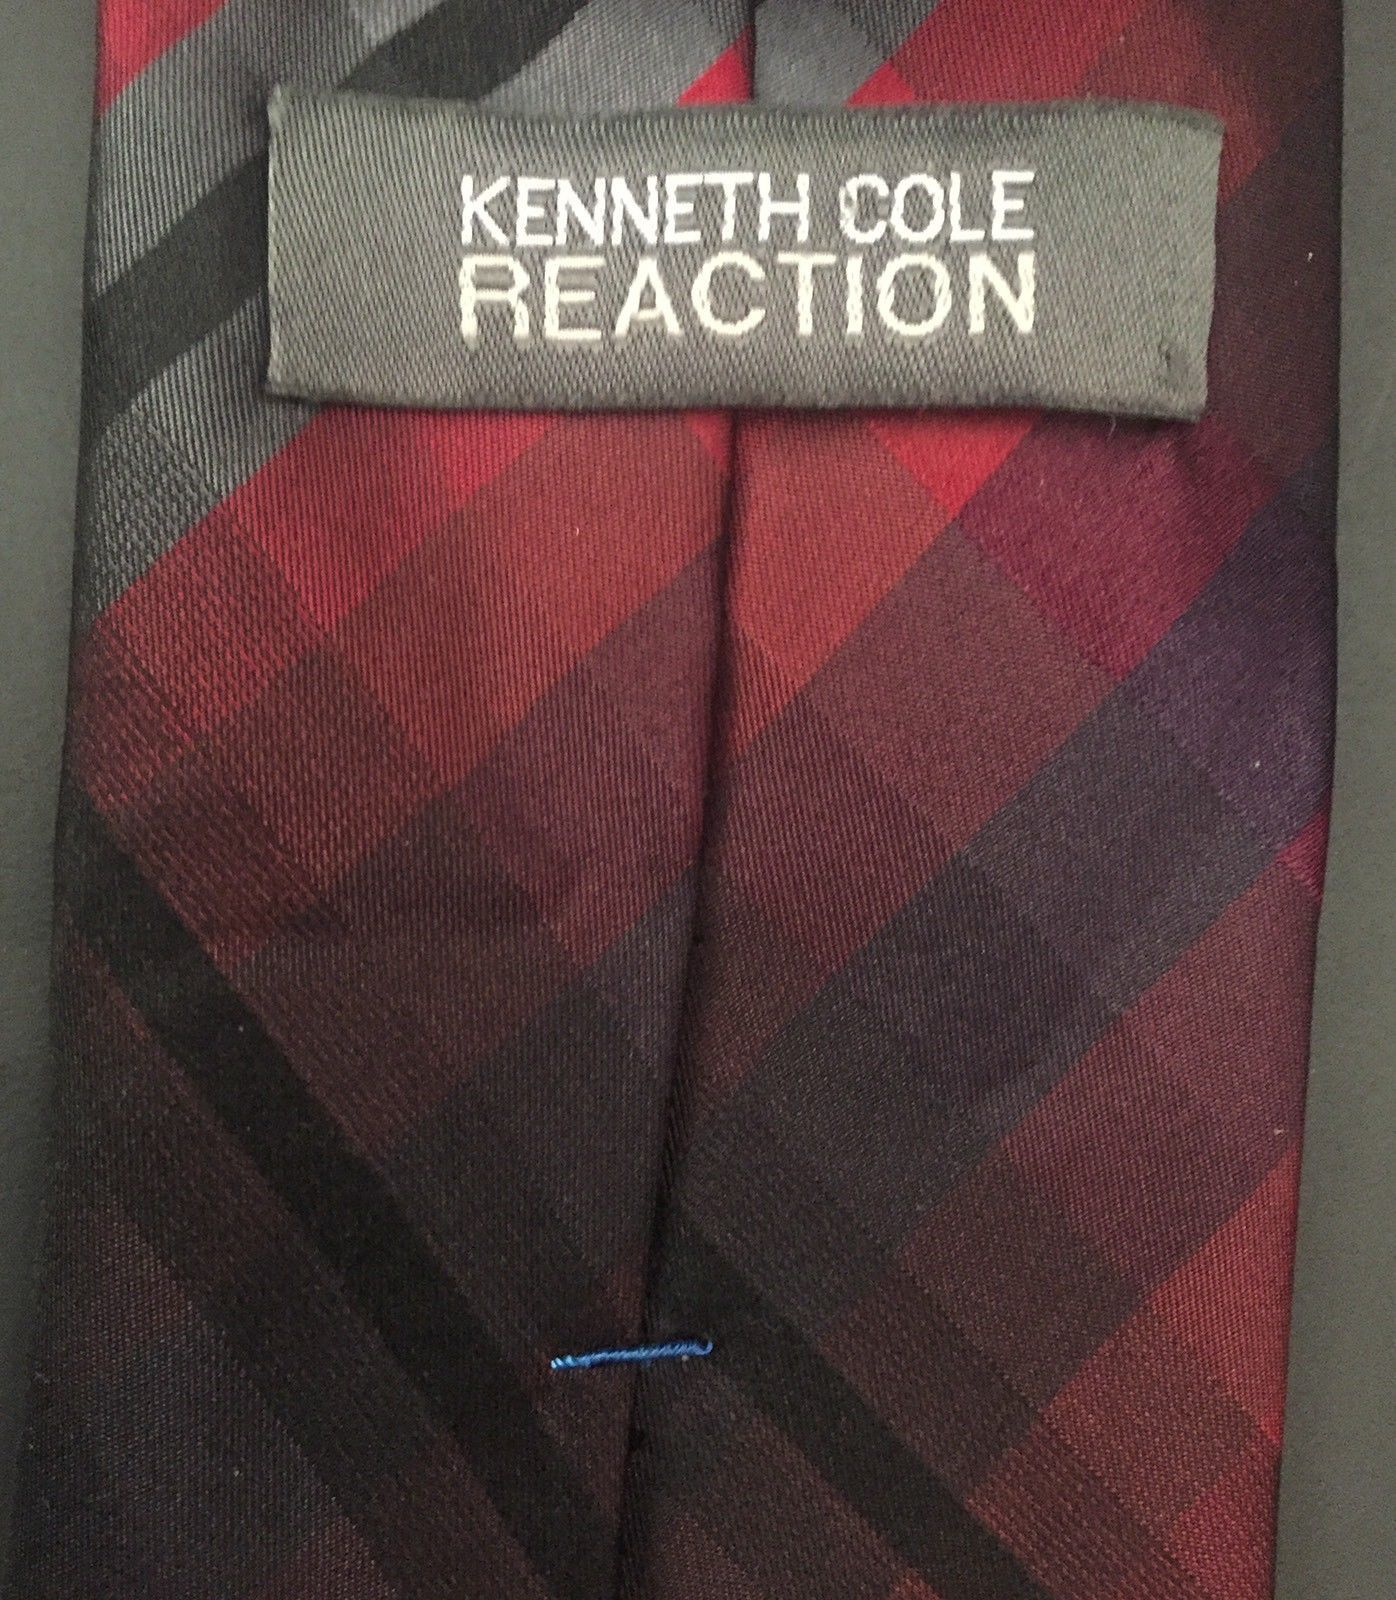 Kenneth Cole Reaction Tie Red Black Gray Cubed Plaid Preppy Necktie Neckwear image 3